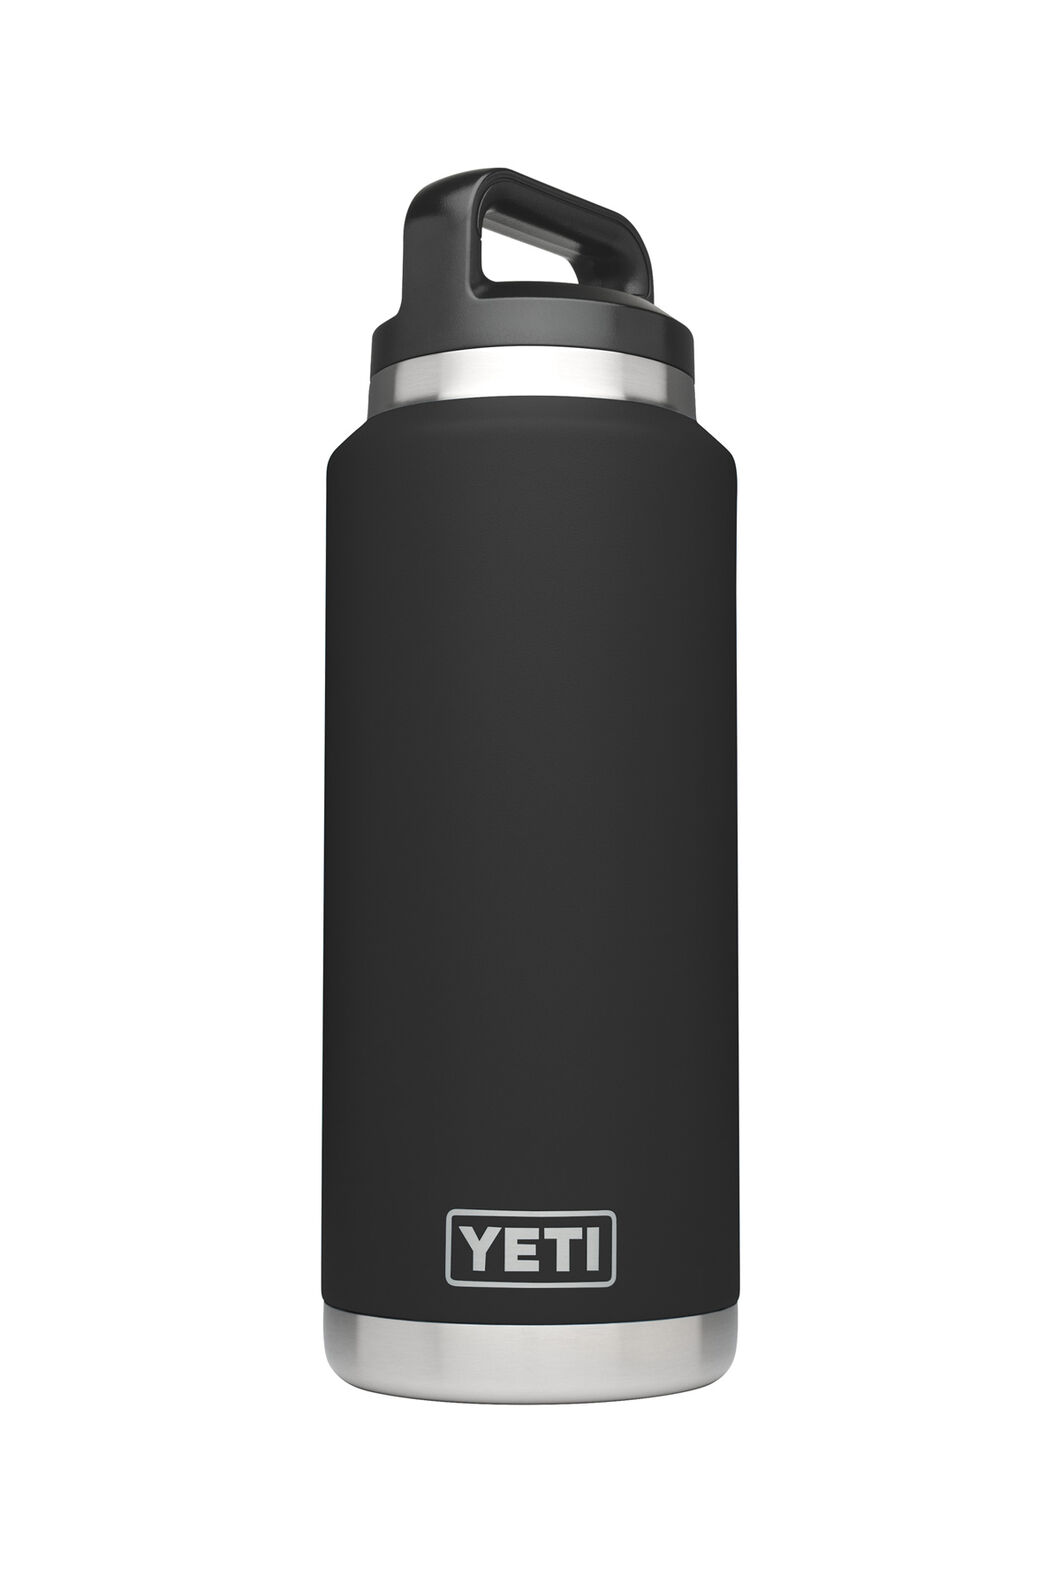 Yeti Rambler Drink Bottle Stainless Steel 36oz, Black, hi-res